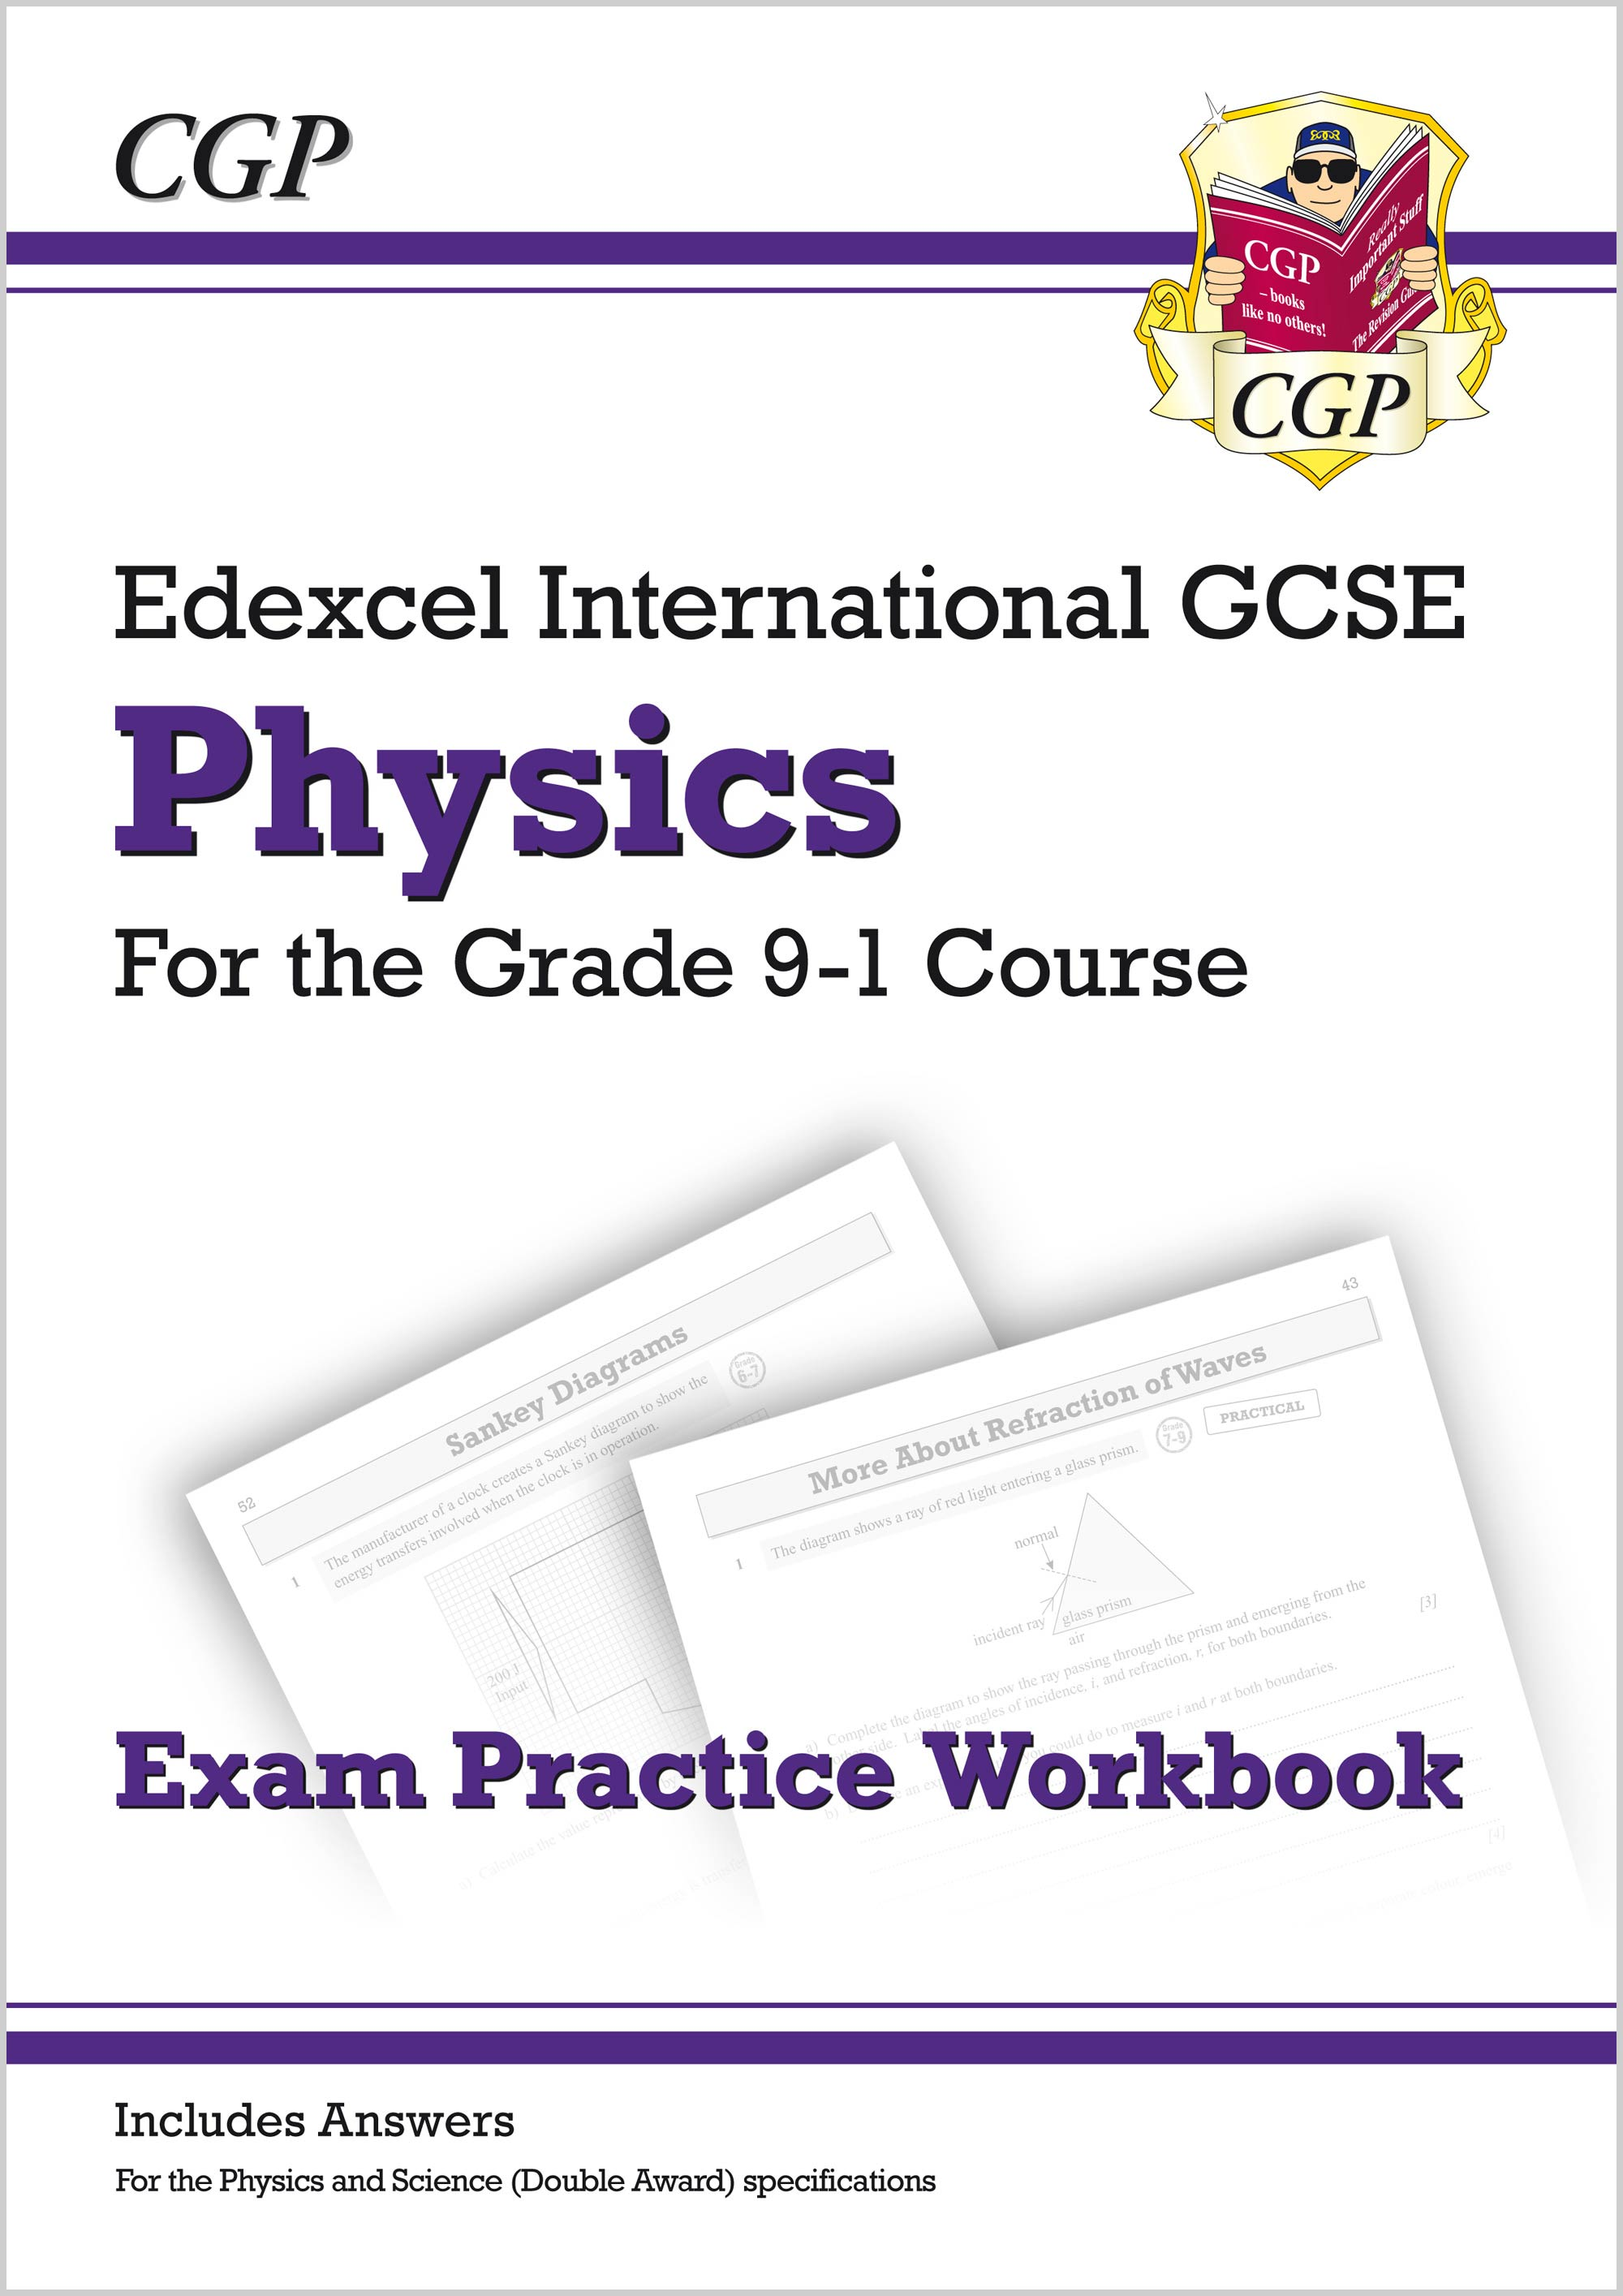 PEQI42 - Grade 9-1 Edexcel International GCSE Physics: Exam Practice Workbook (includes Answers)